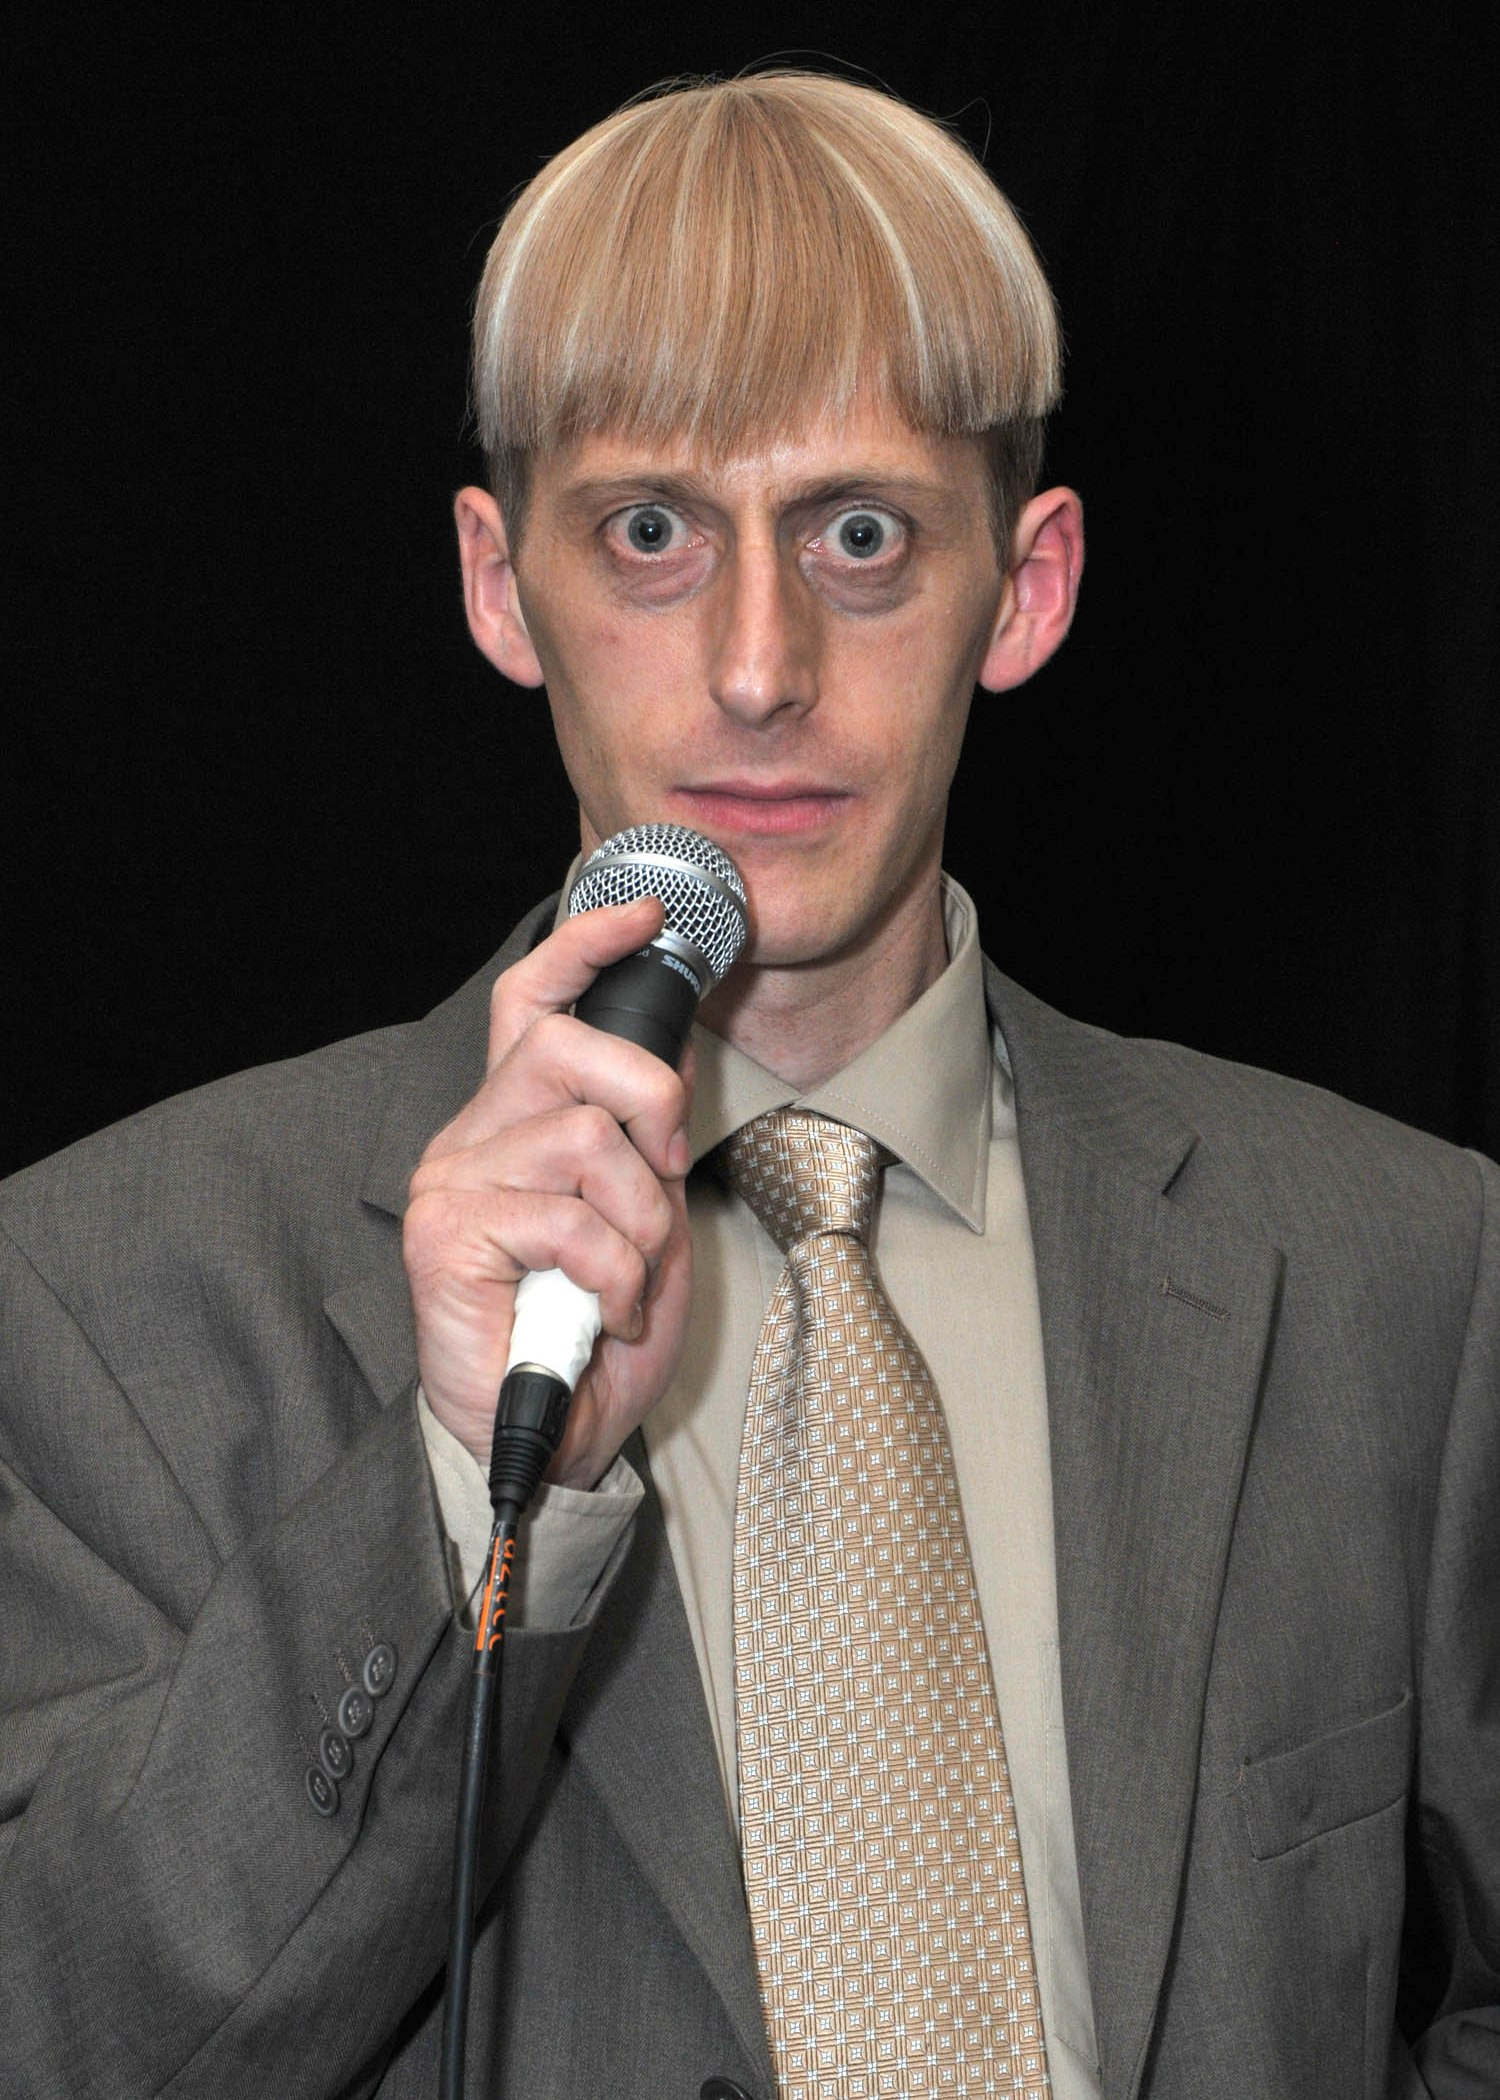 Brett Sirrell is the only Gareth Keenan (Mackenzie Crook) lookalike in the UK. A professional Magician and entertainer for over 20 years,  performing for countless corporate clients and events across the world. Fast thinking, quick witted and with a natural sense for great comedy that just cannot be taught - also TA trained to kill (only at weekends).